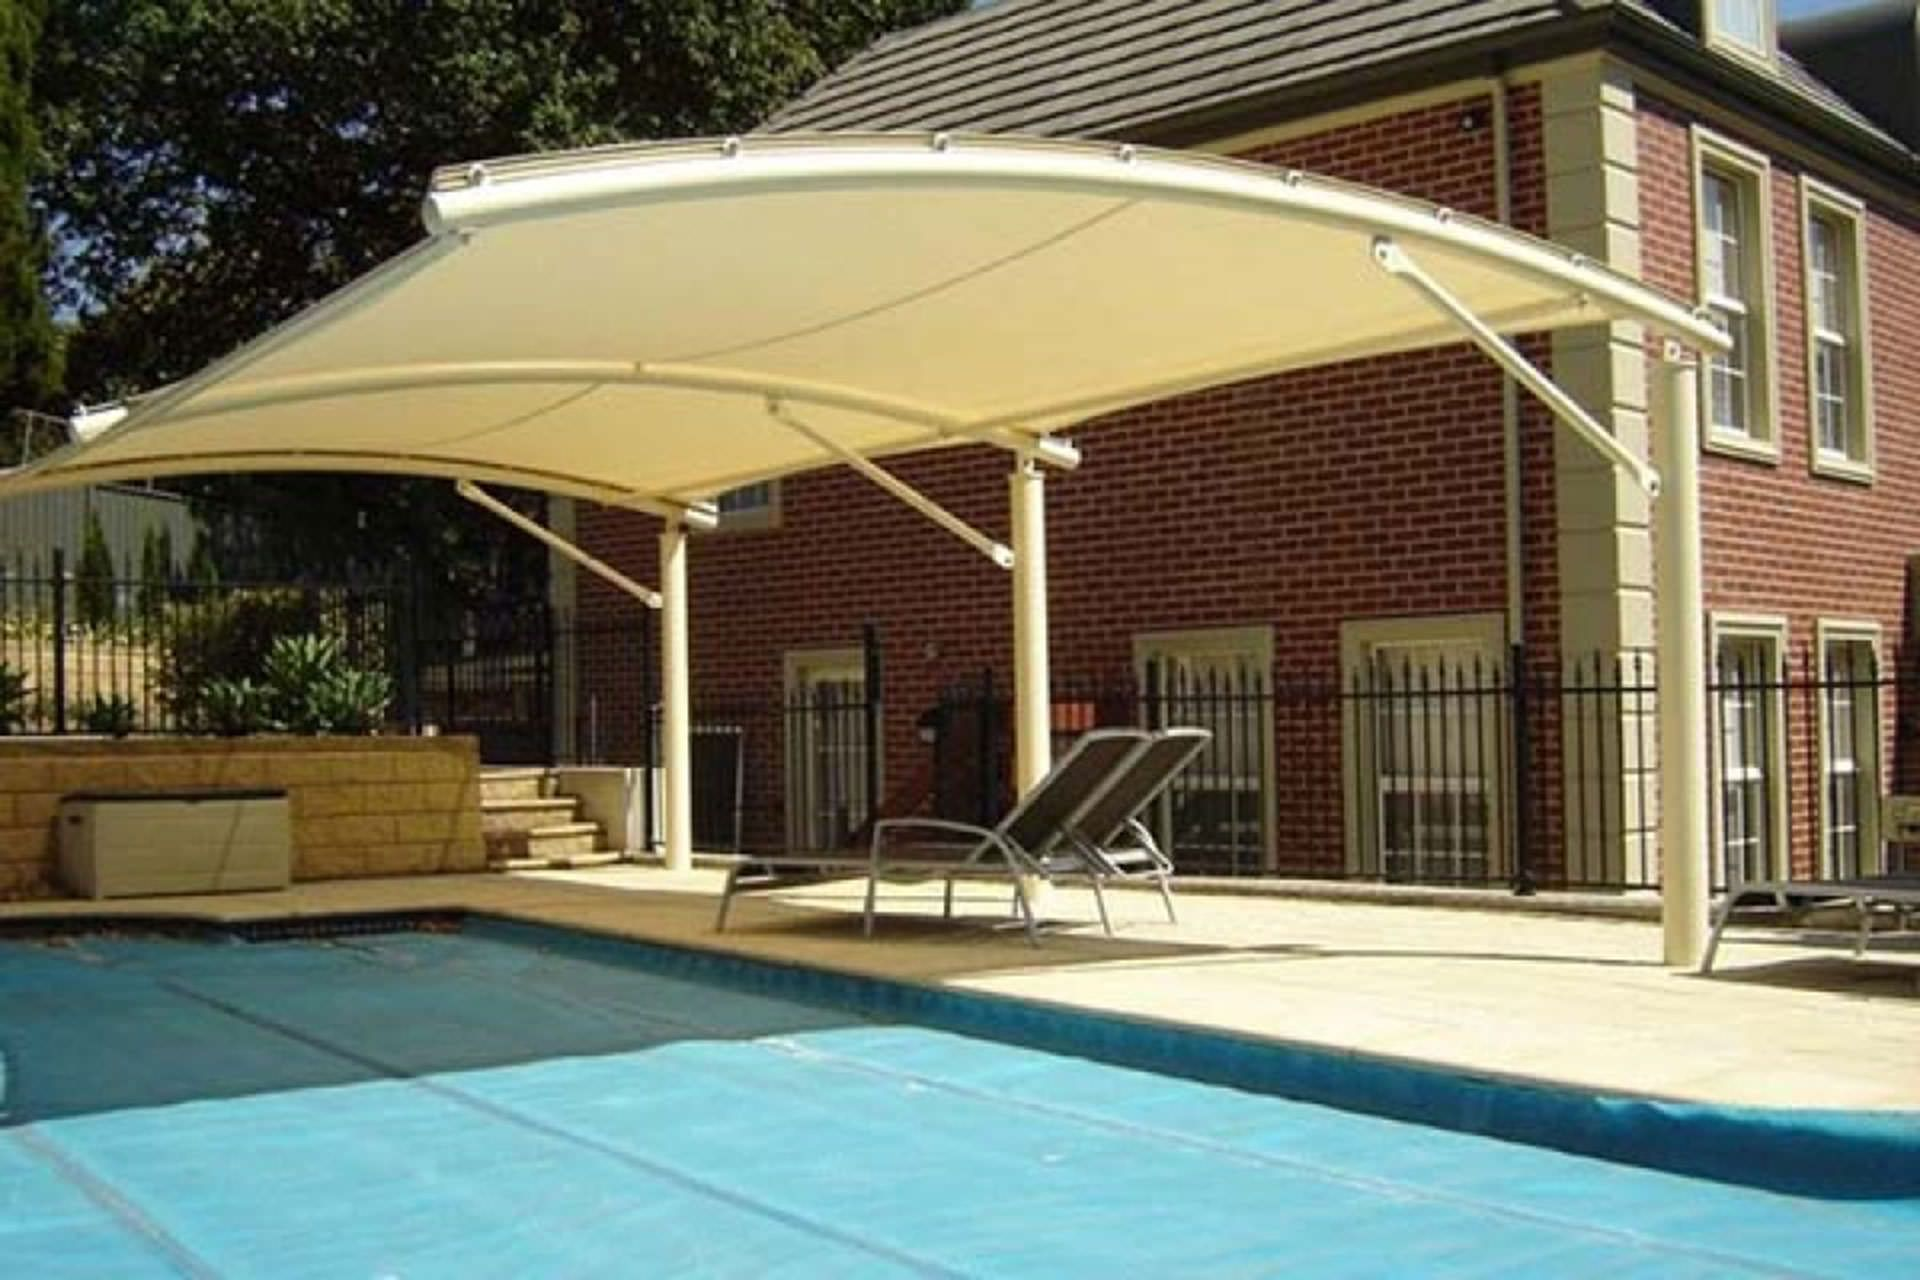 Pool Shade Ideas Cantilevered Pool Shade Pool Canopy Backyard Pool